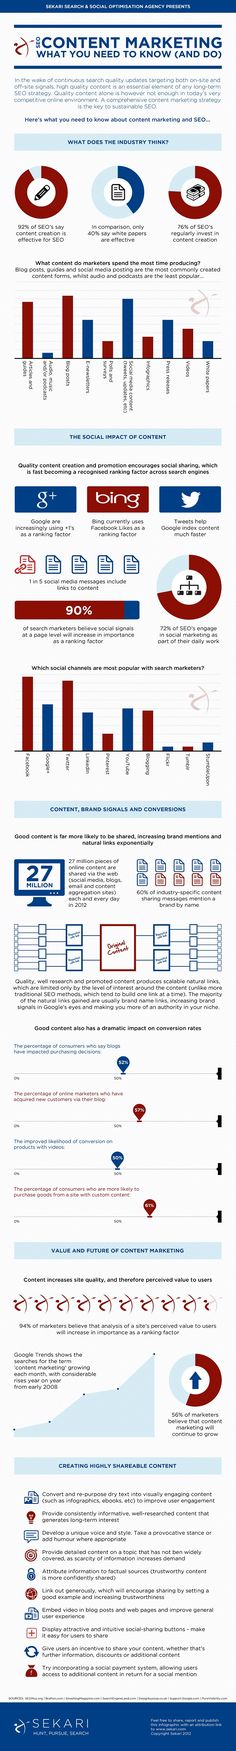 content marketing #SEO strategy Infographic # www.seobats.com